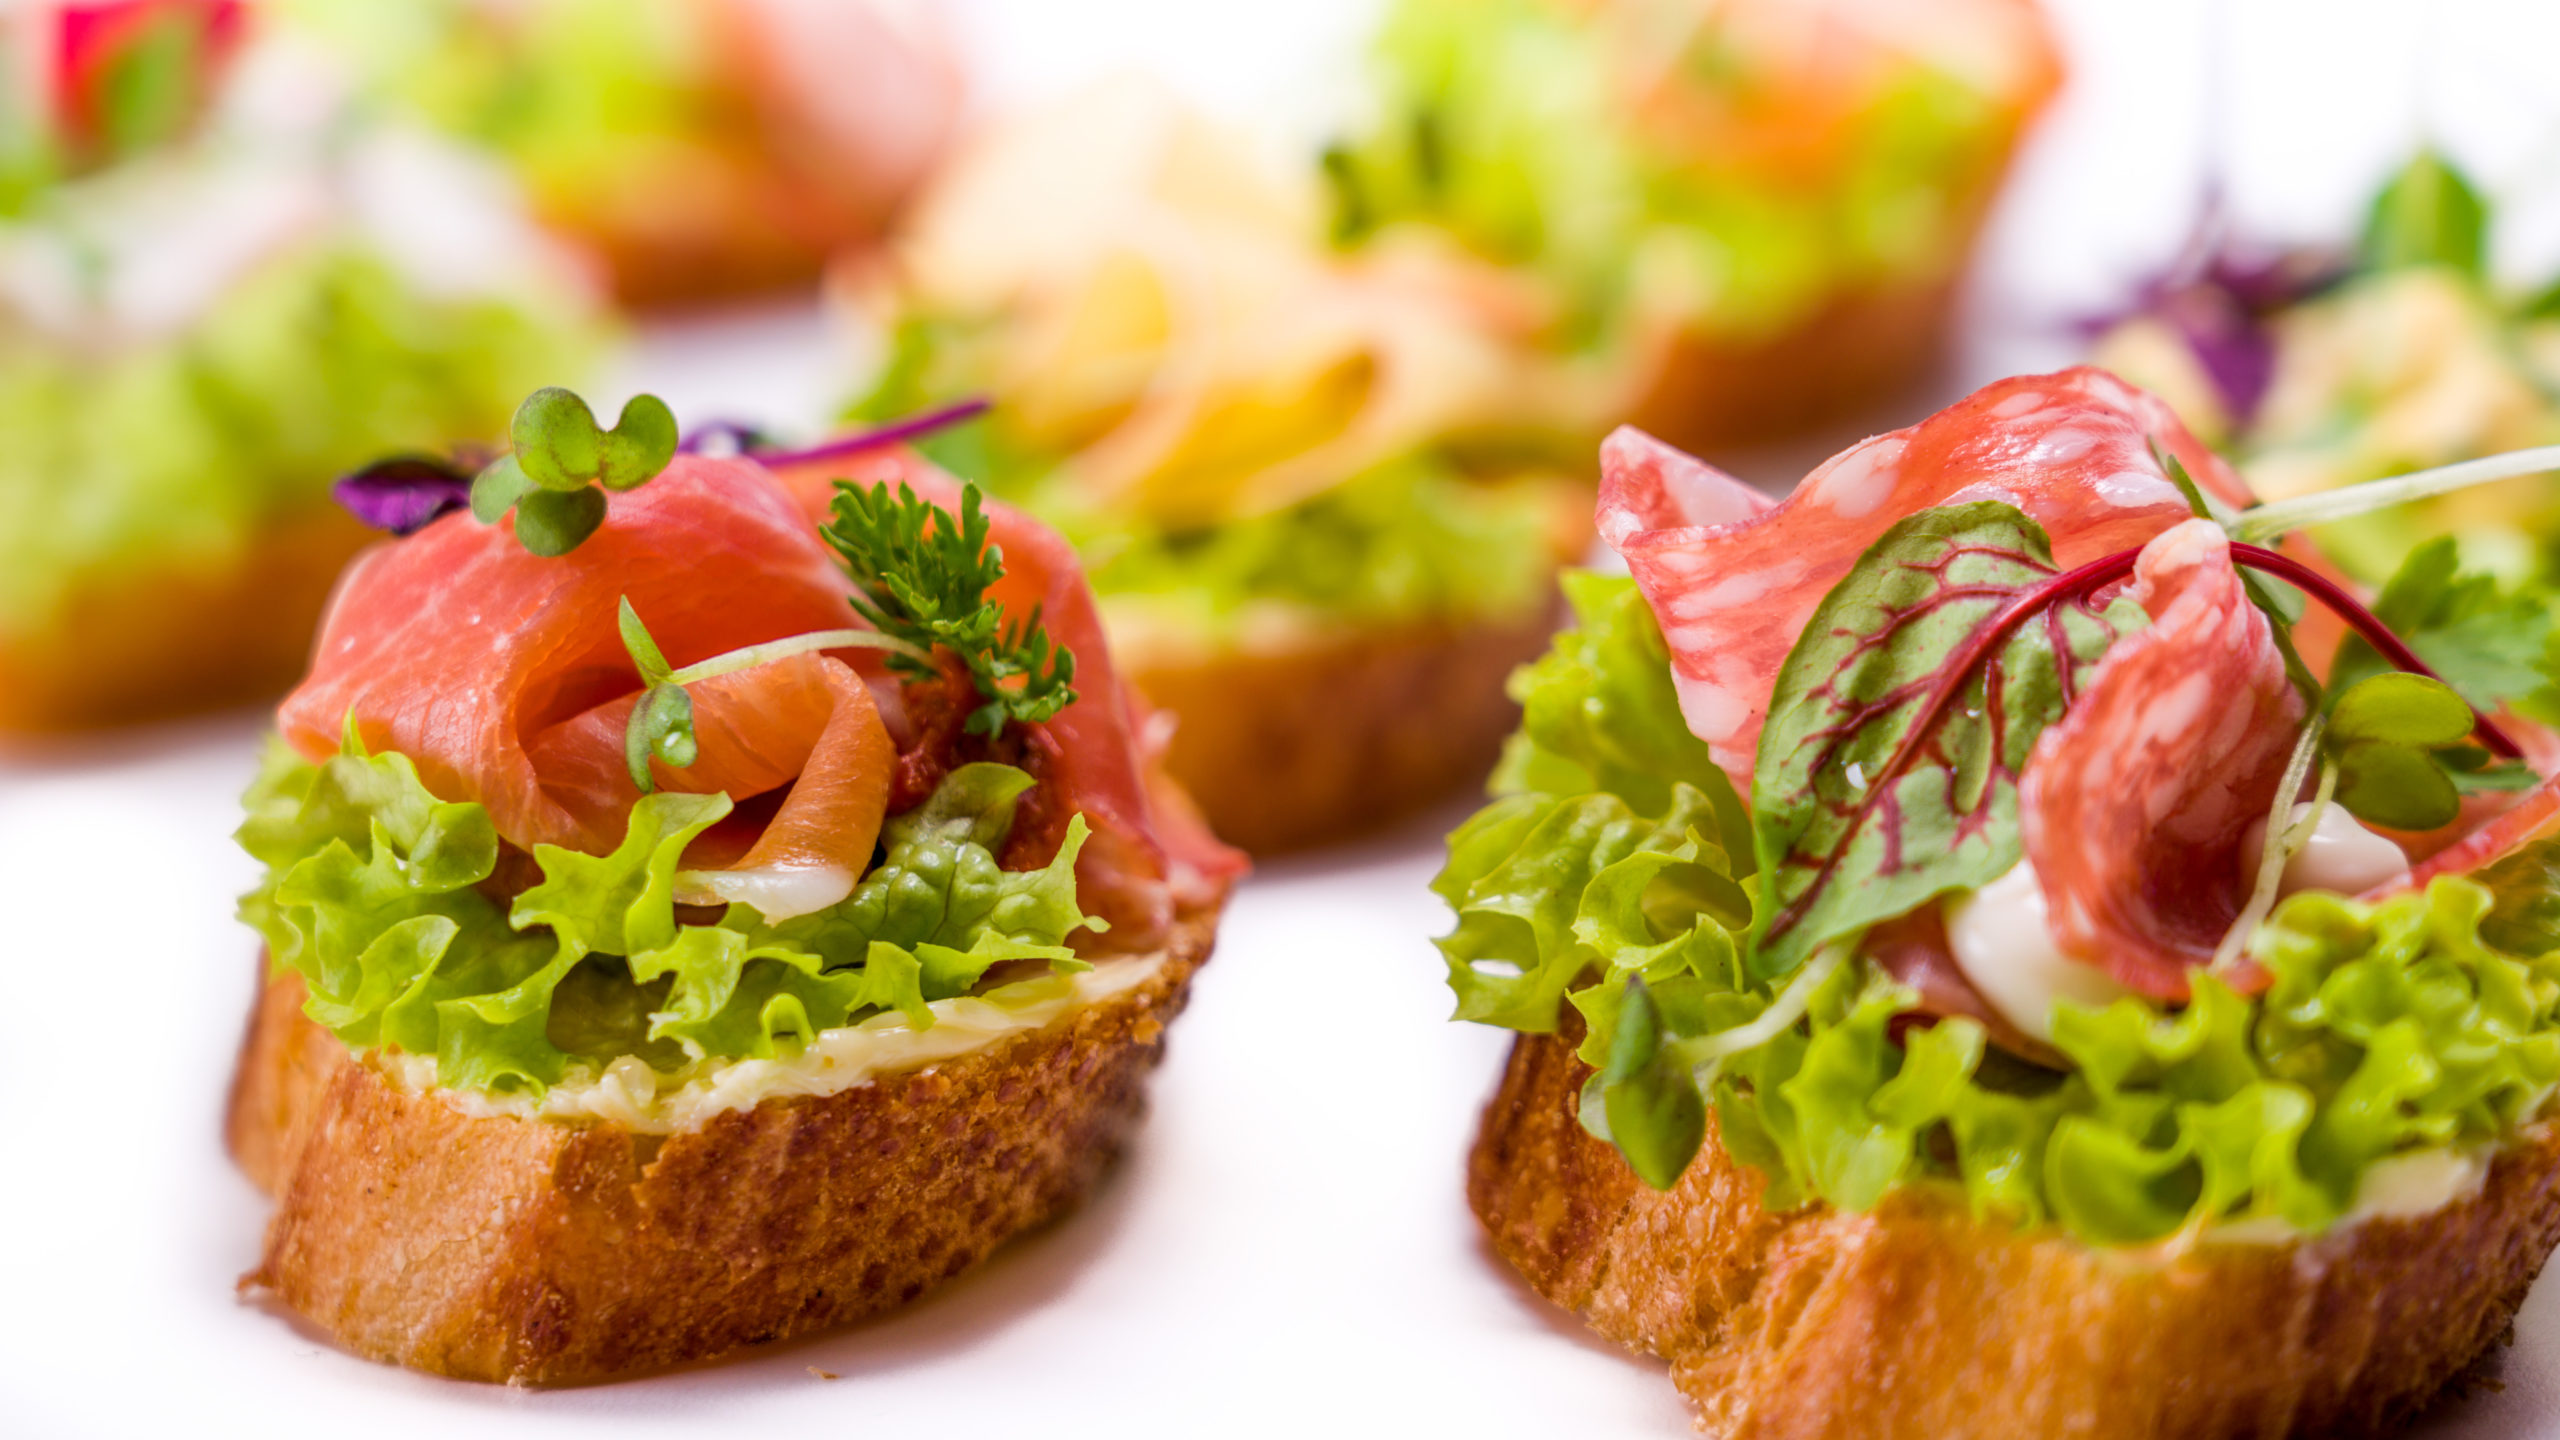 canape-snack-business-catering-fingerfood